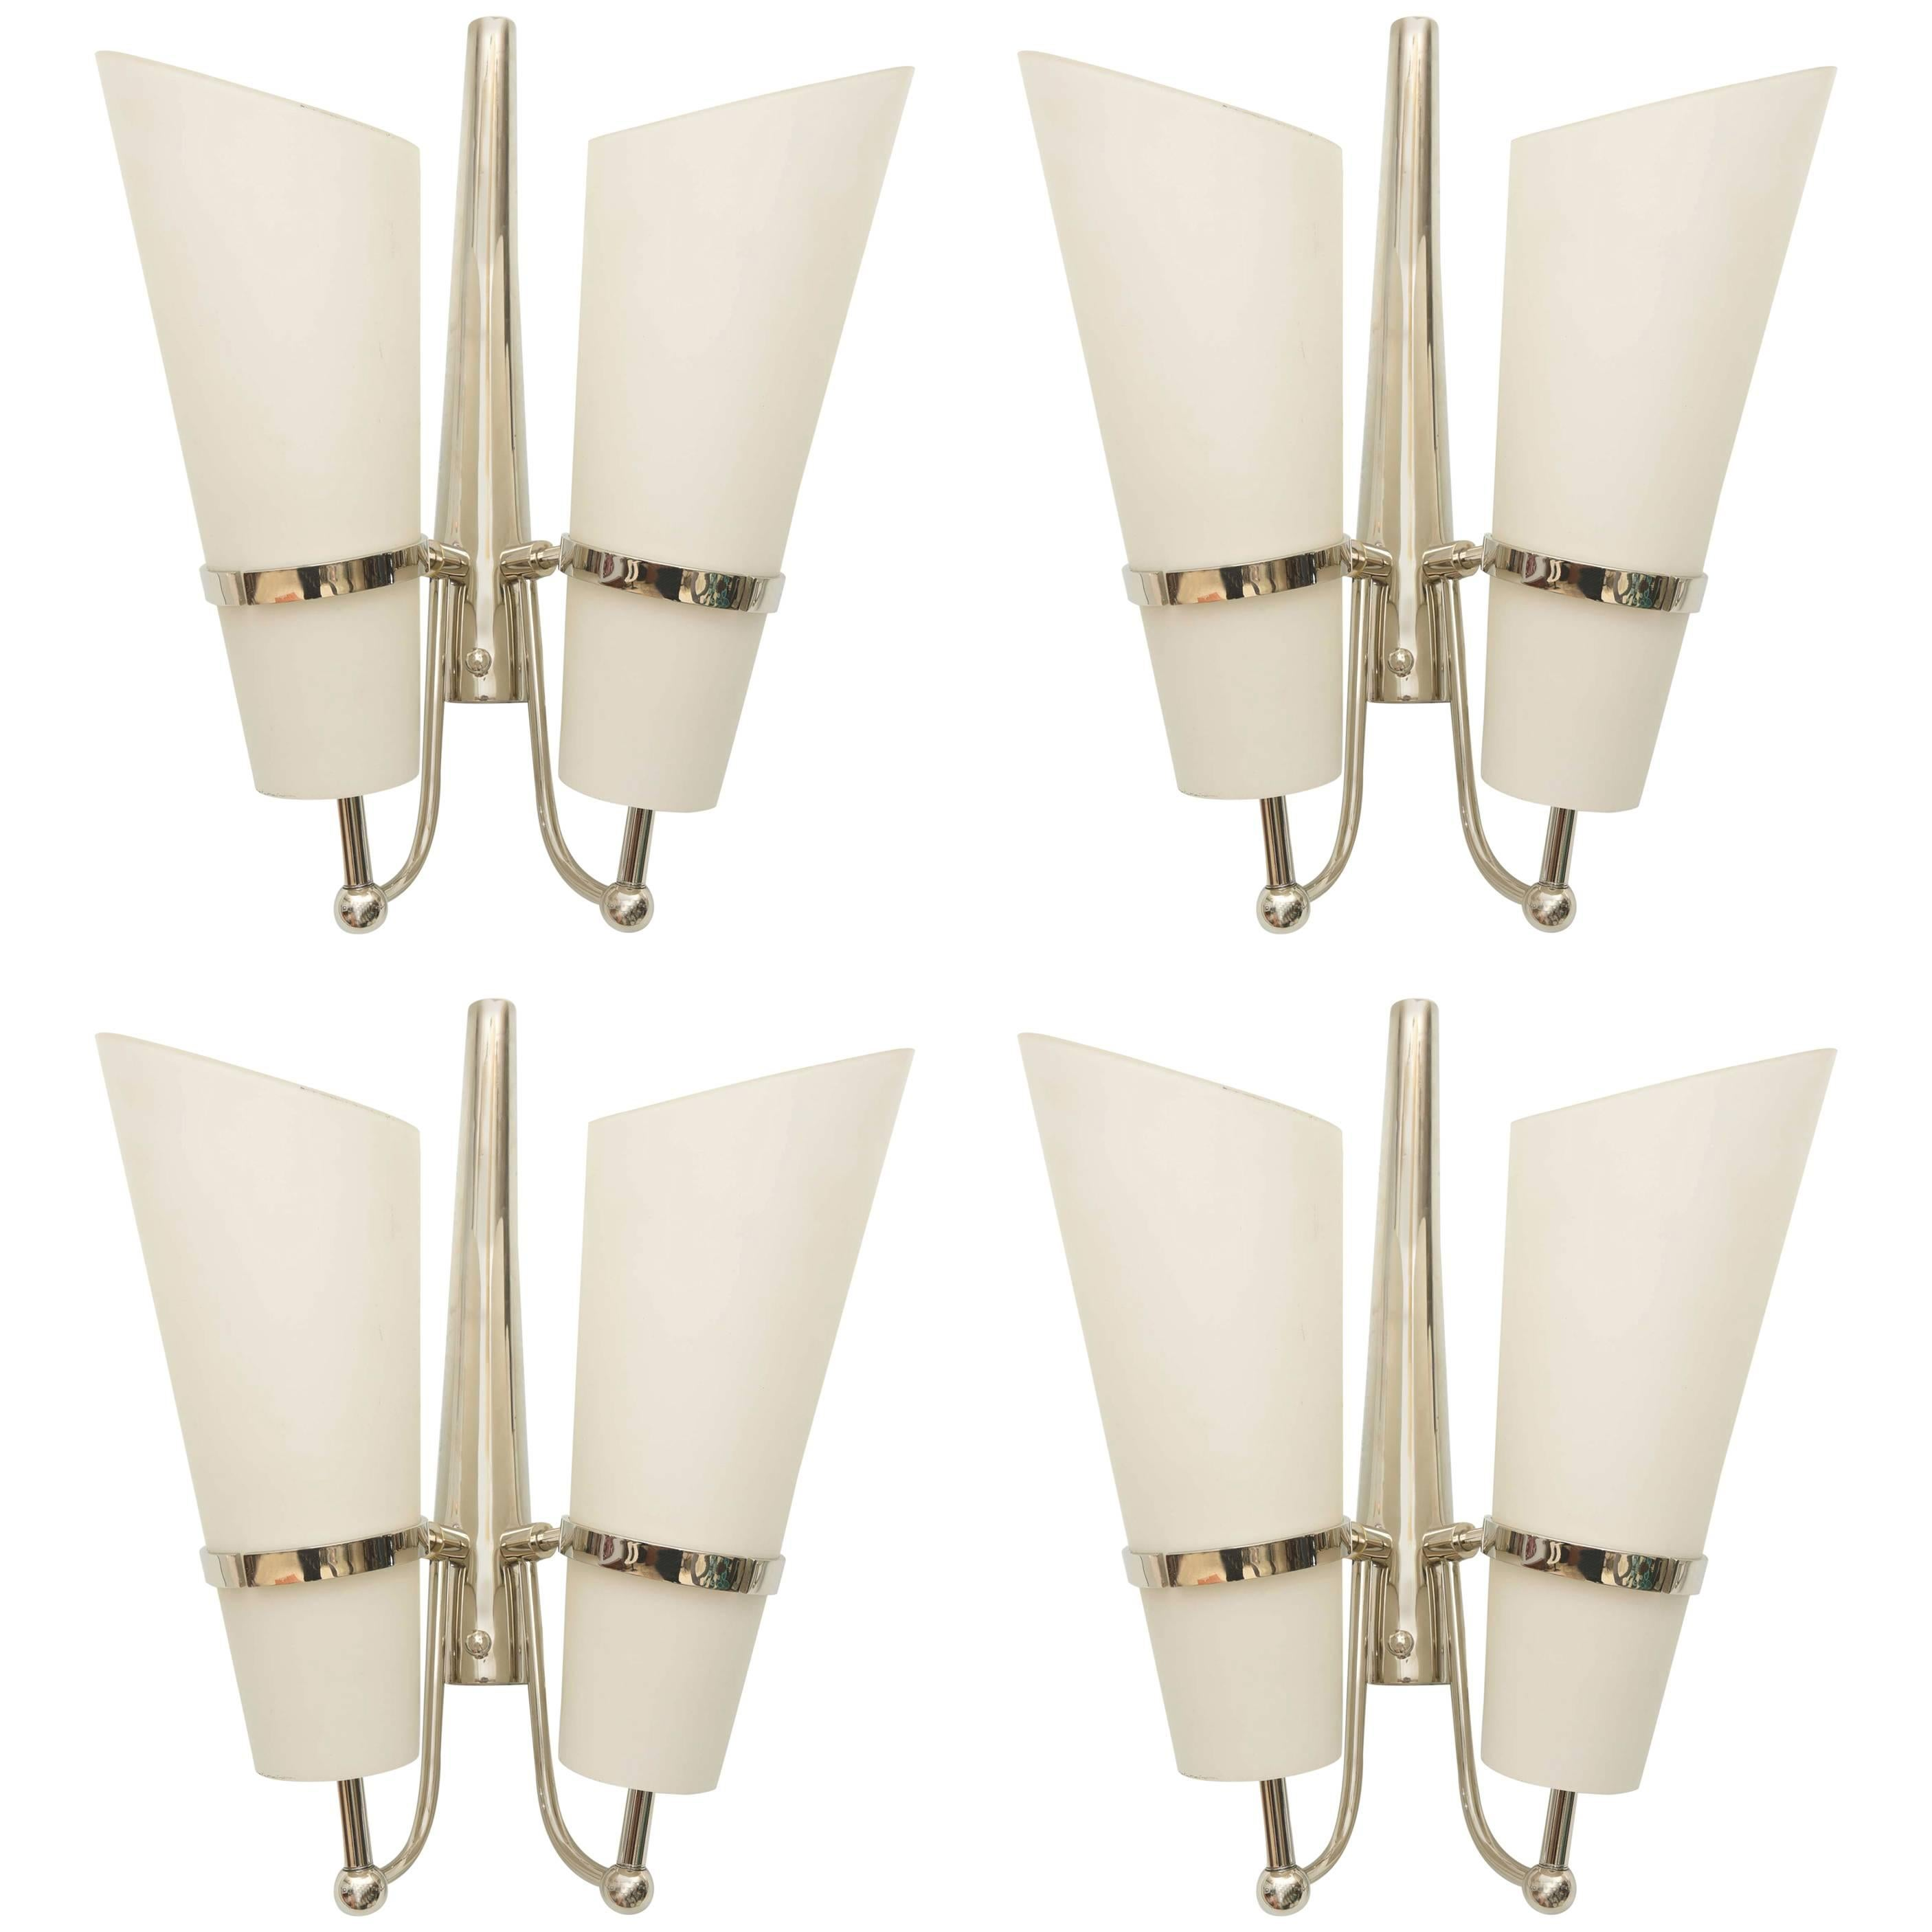 Set of four Italian Modern Nickel and Glass Wall Lights, Attributed to Stilnovo